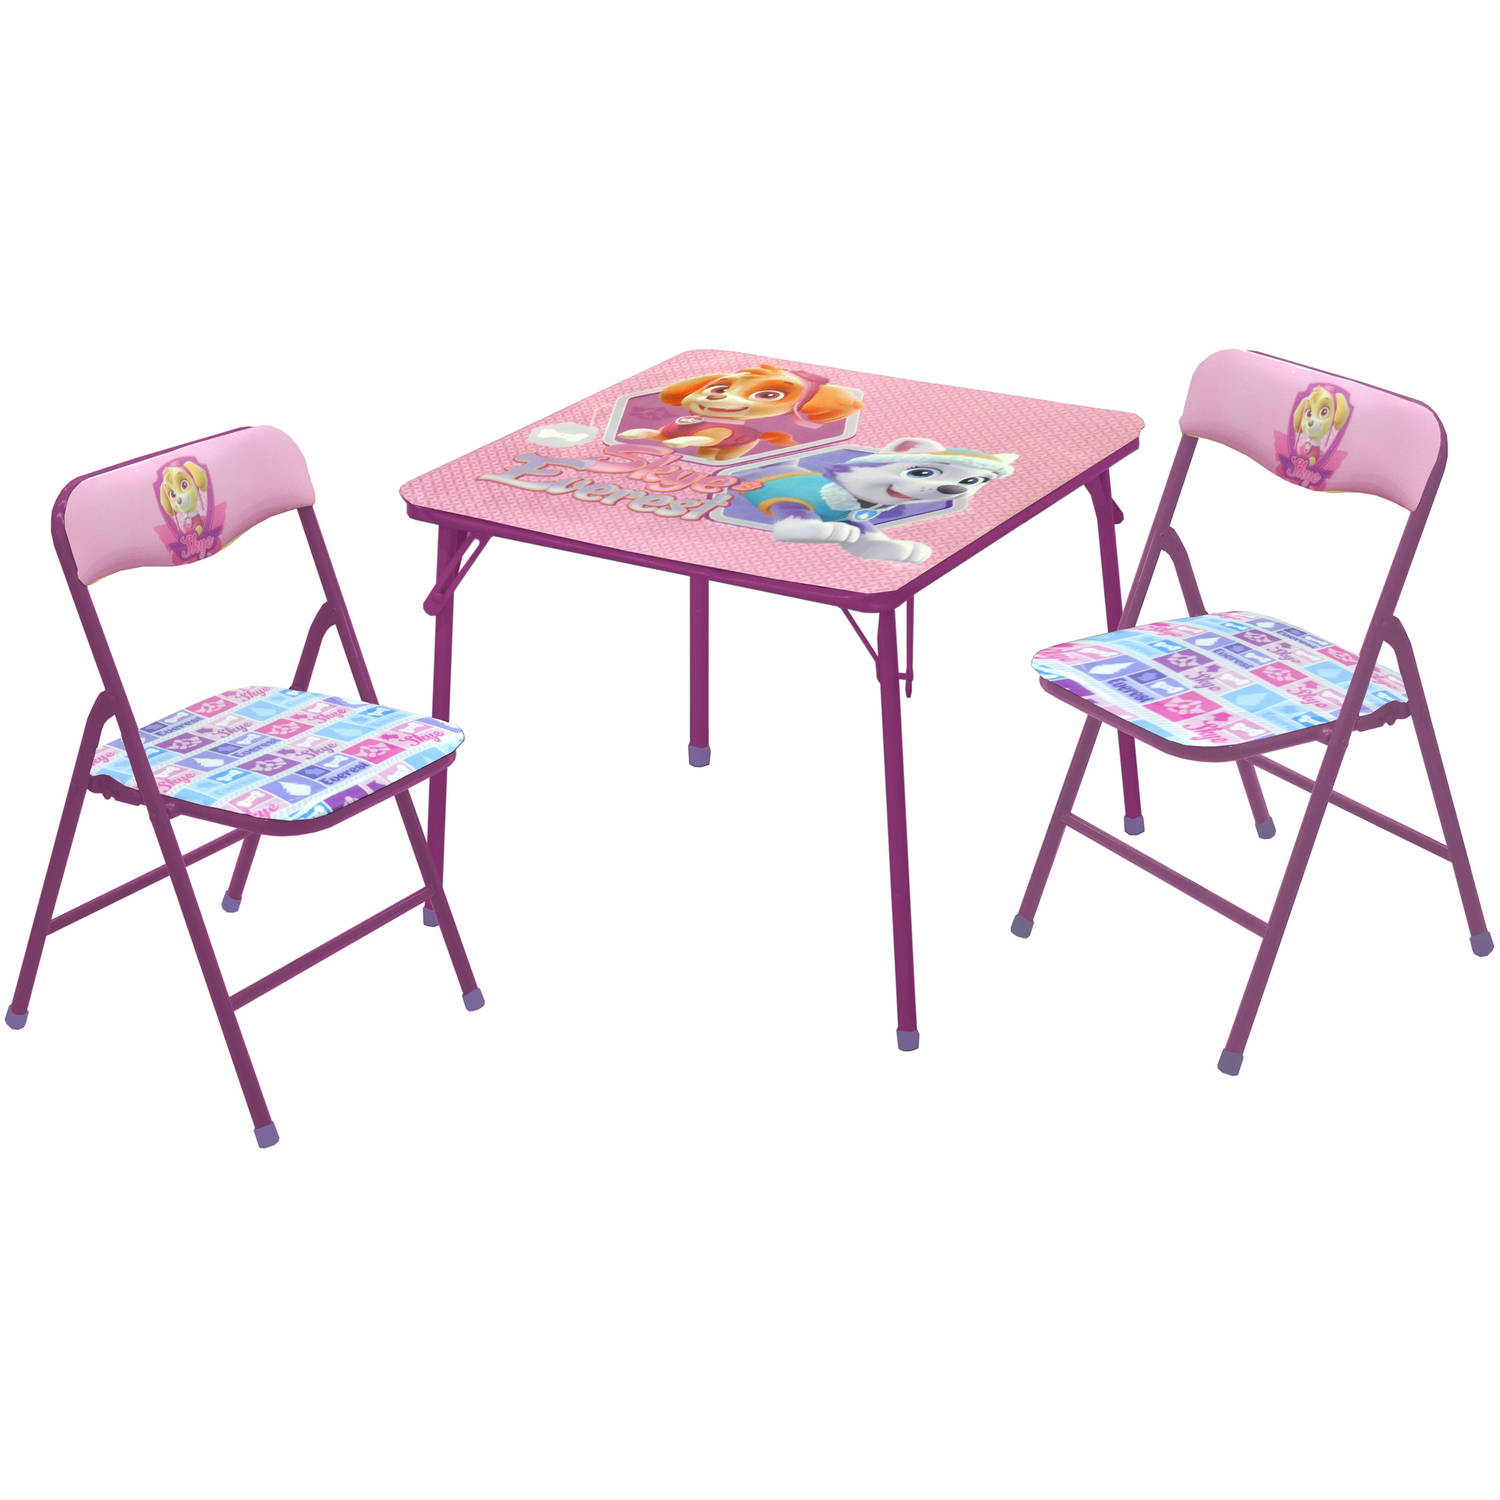 Nickelodeon Paw Patrol Girls' 3-Piece Table and Chairs Set by Idea Nuova